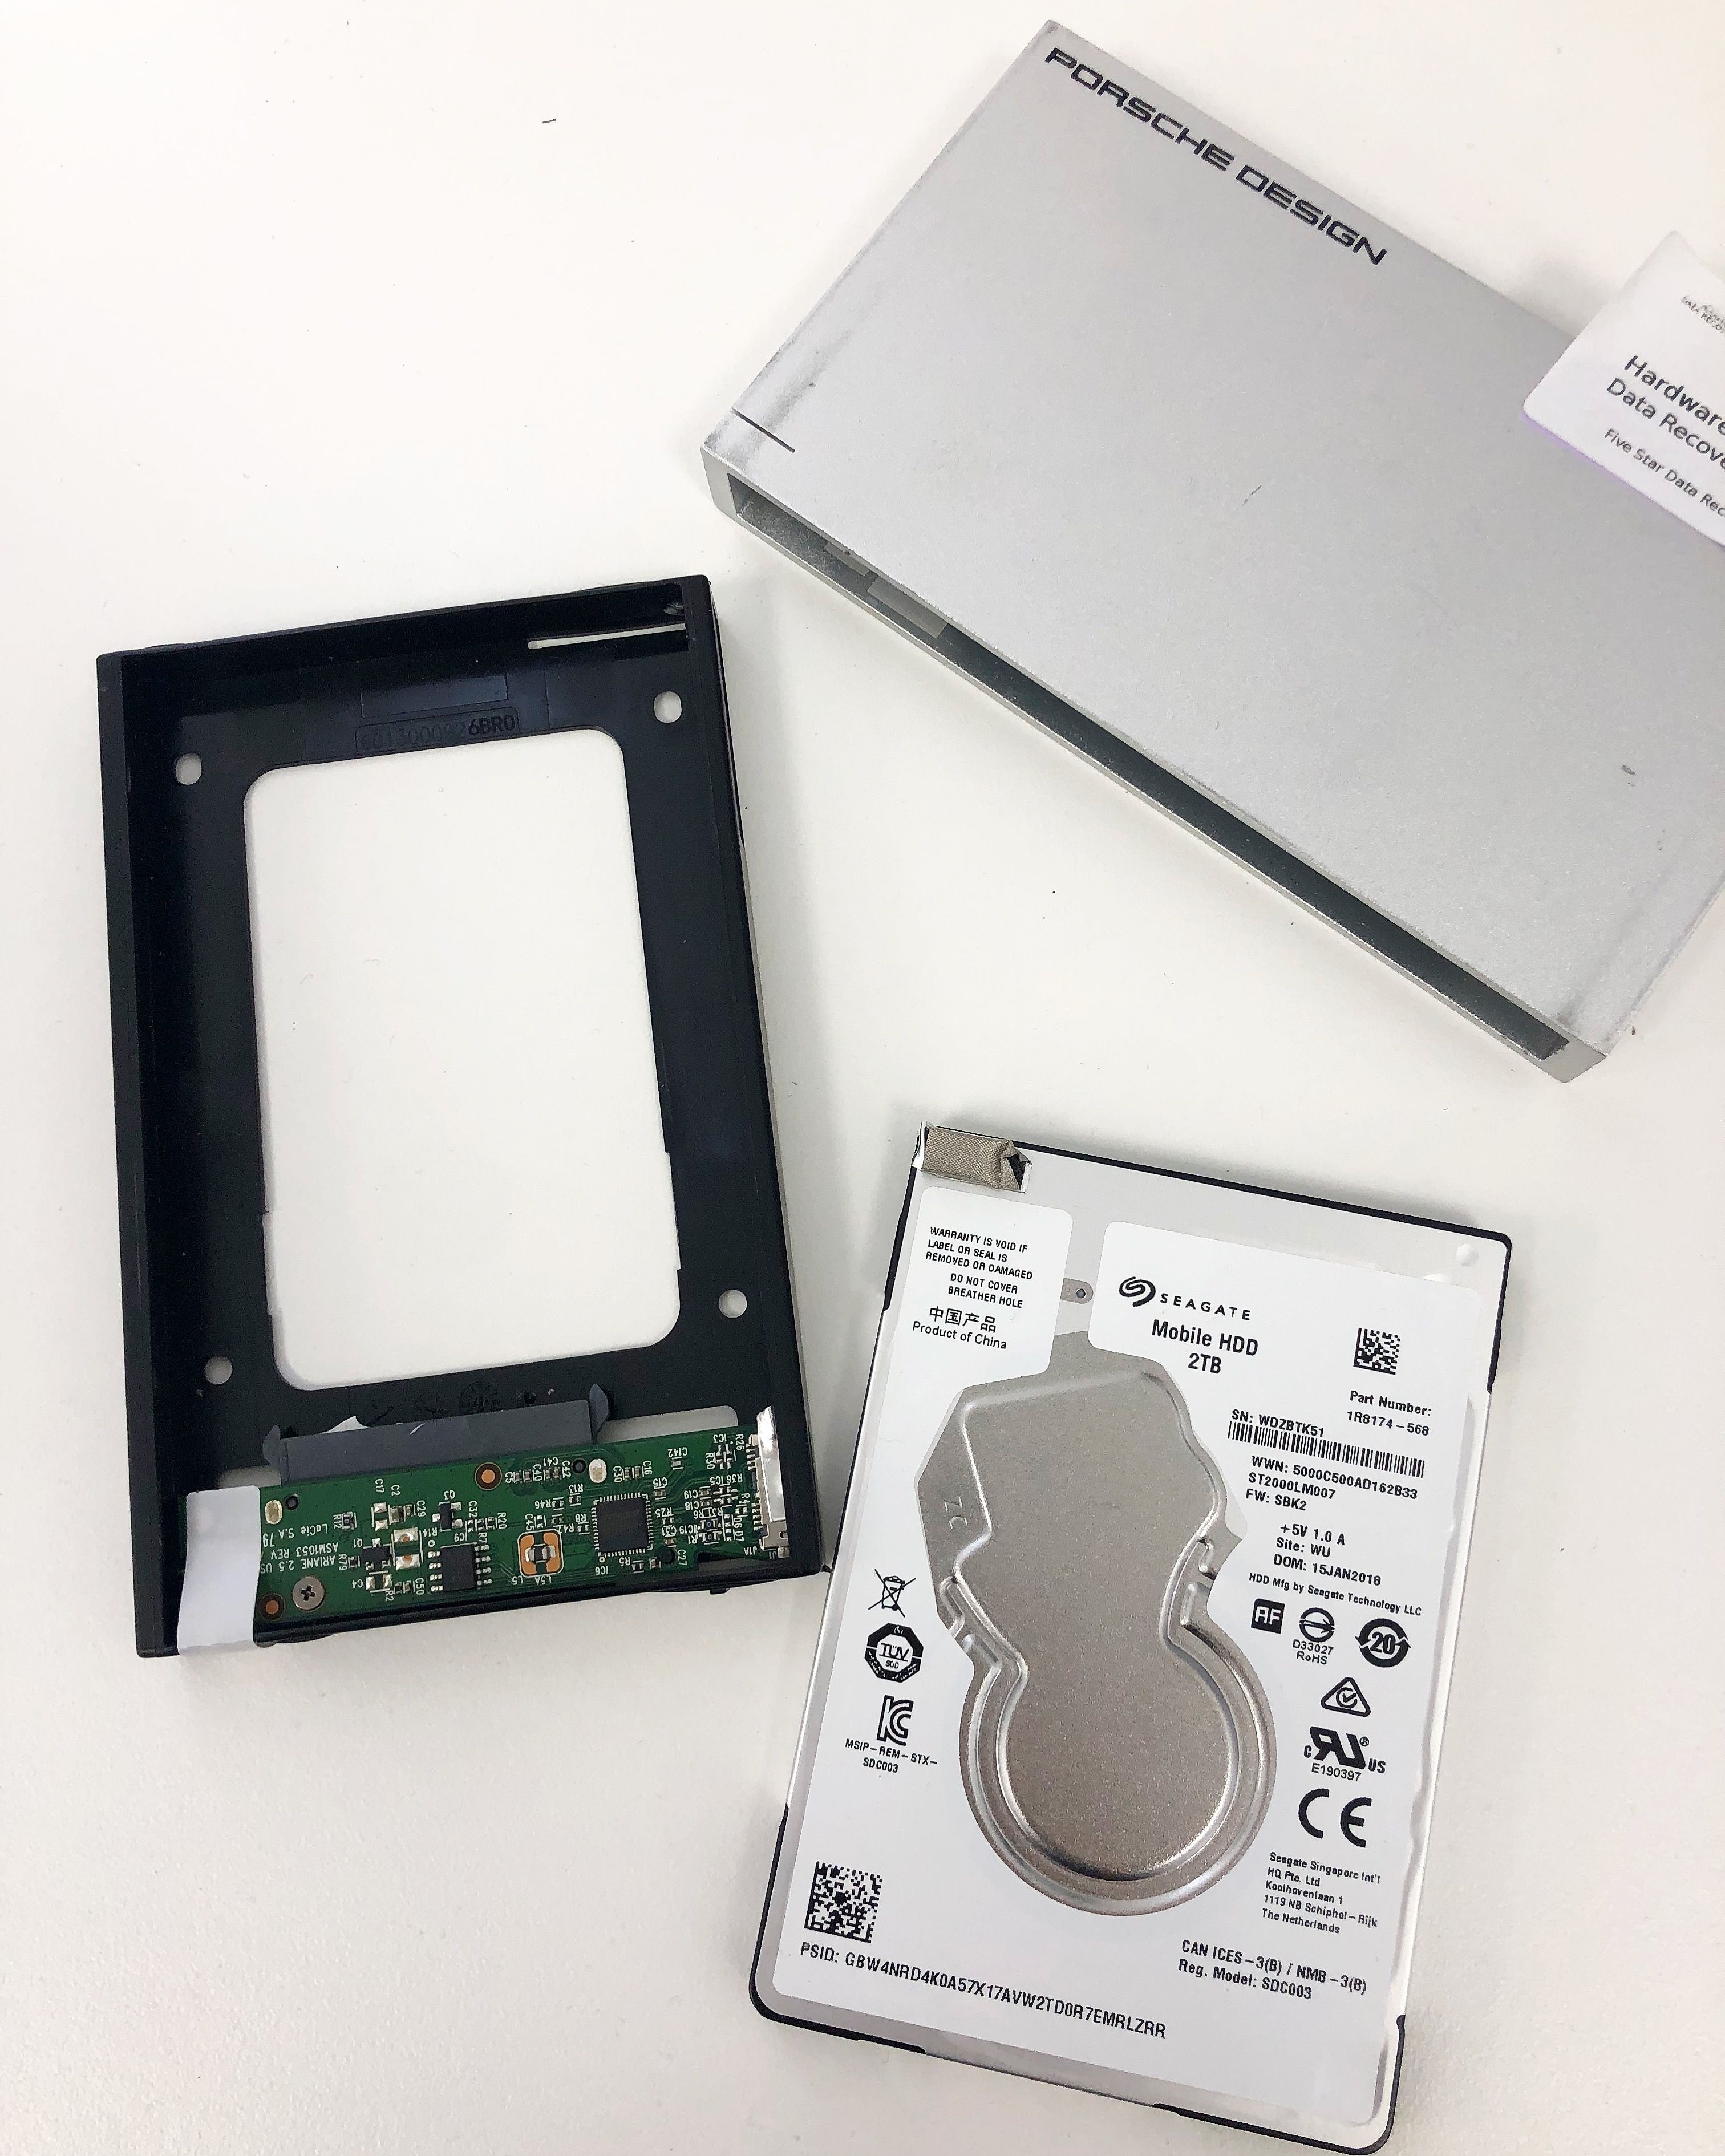 Working on a Seagate Slim (ST2000LM007) where the customer